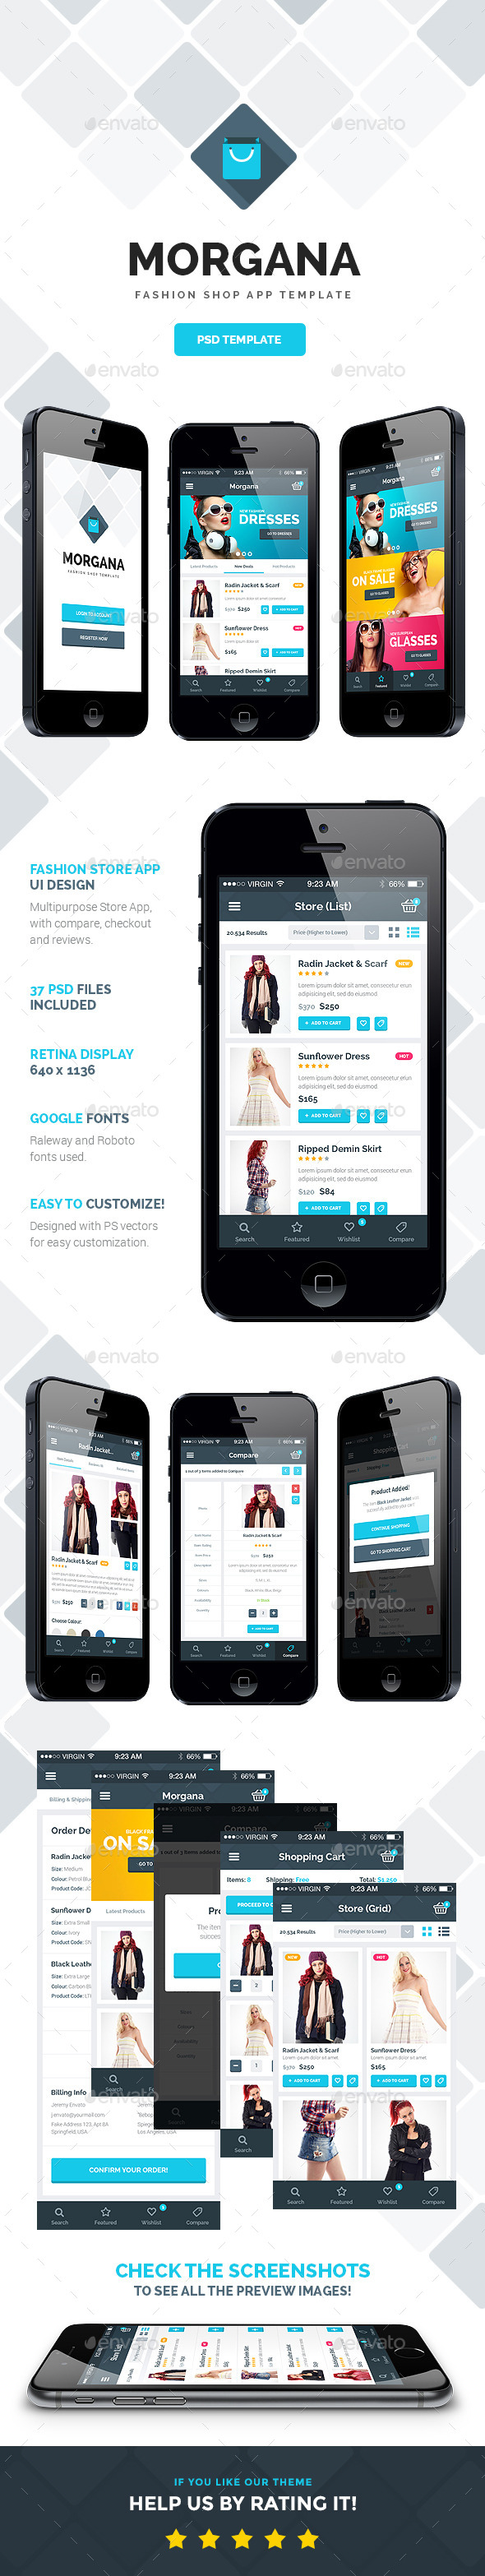 Morgana Fashion Shop - PSD App Template - User Interfaces Web Elements